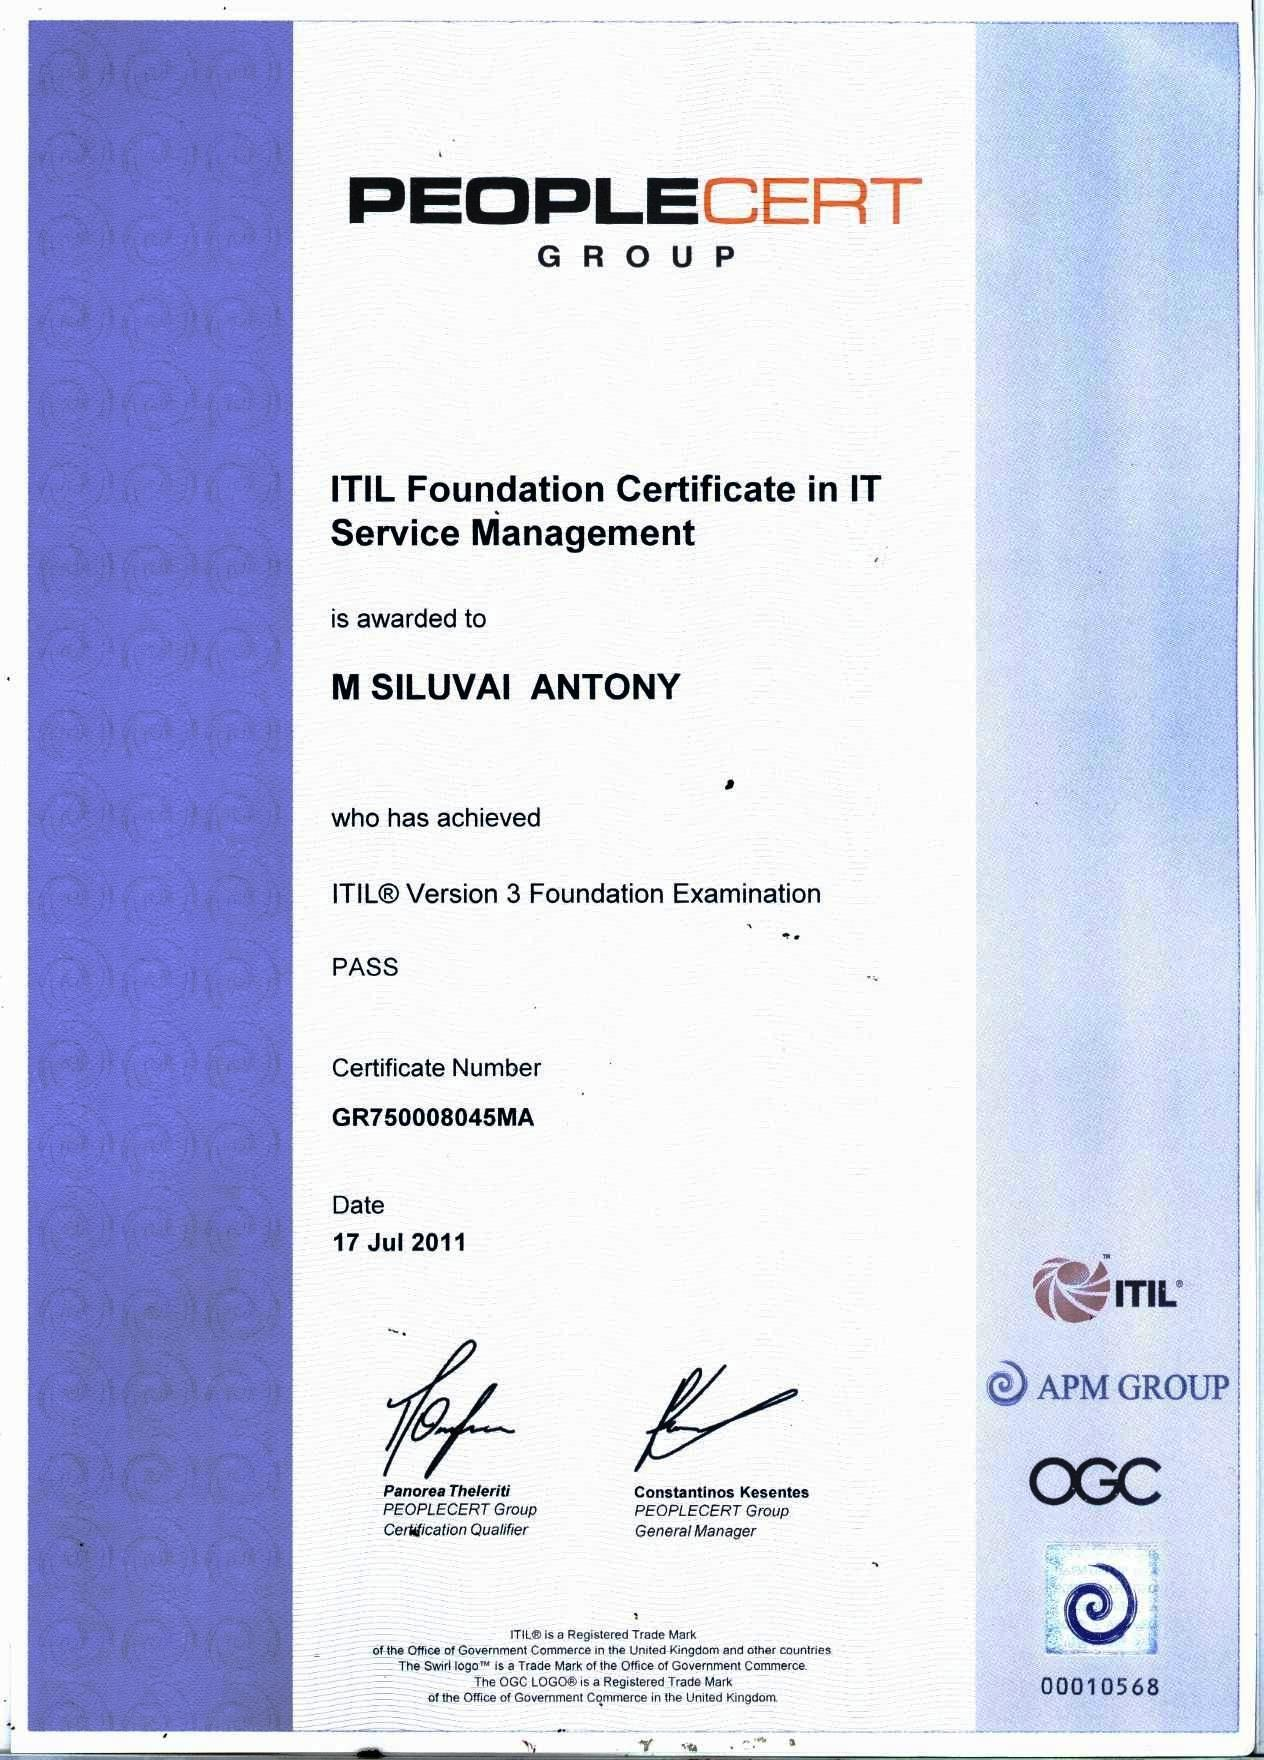 Awesome pictures of itil foundation certification business cards siluvai antony mariya dassan bayt siluvai antony mariya dassan bayt from itil foundation certification image xflitez Gallery